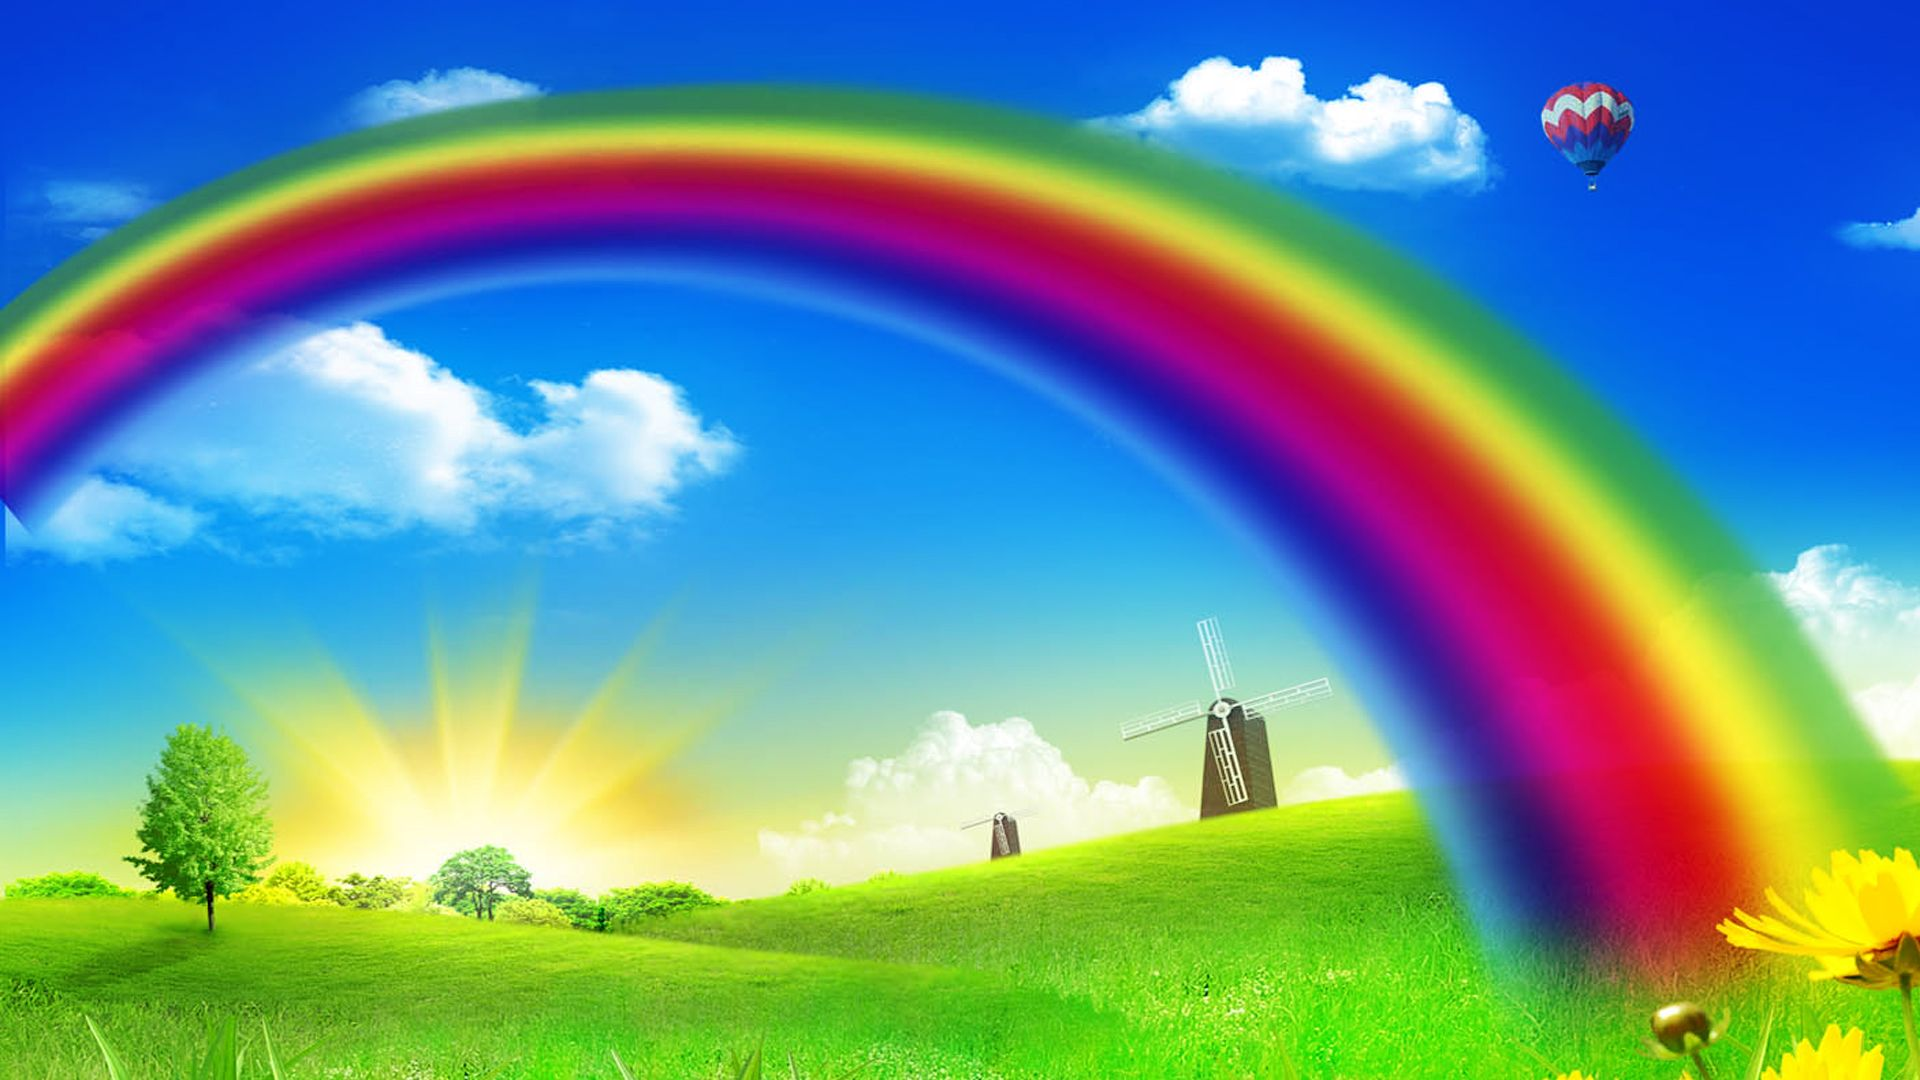 Download Cartoon Rainbow wallpapers to your cell phone cartoon